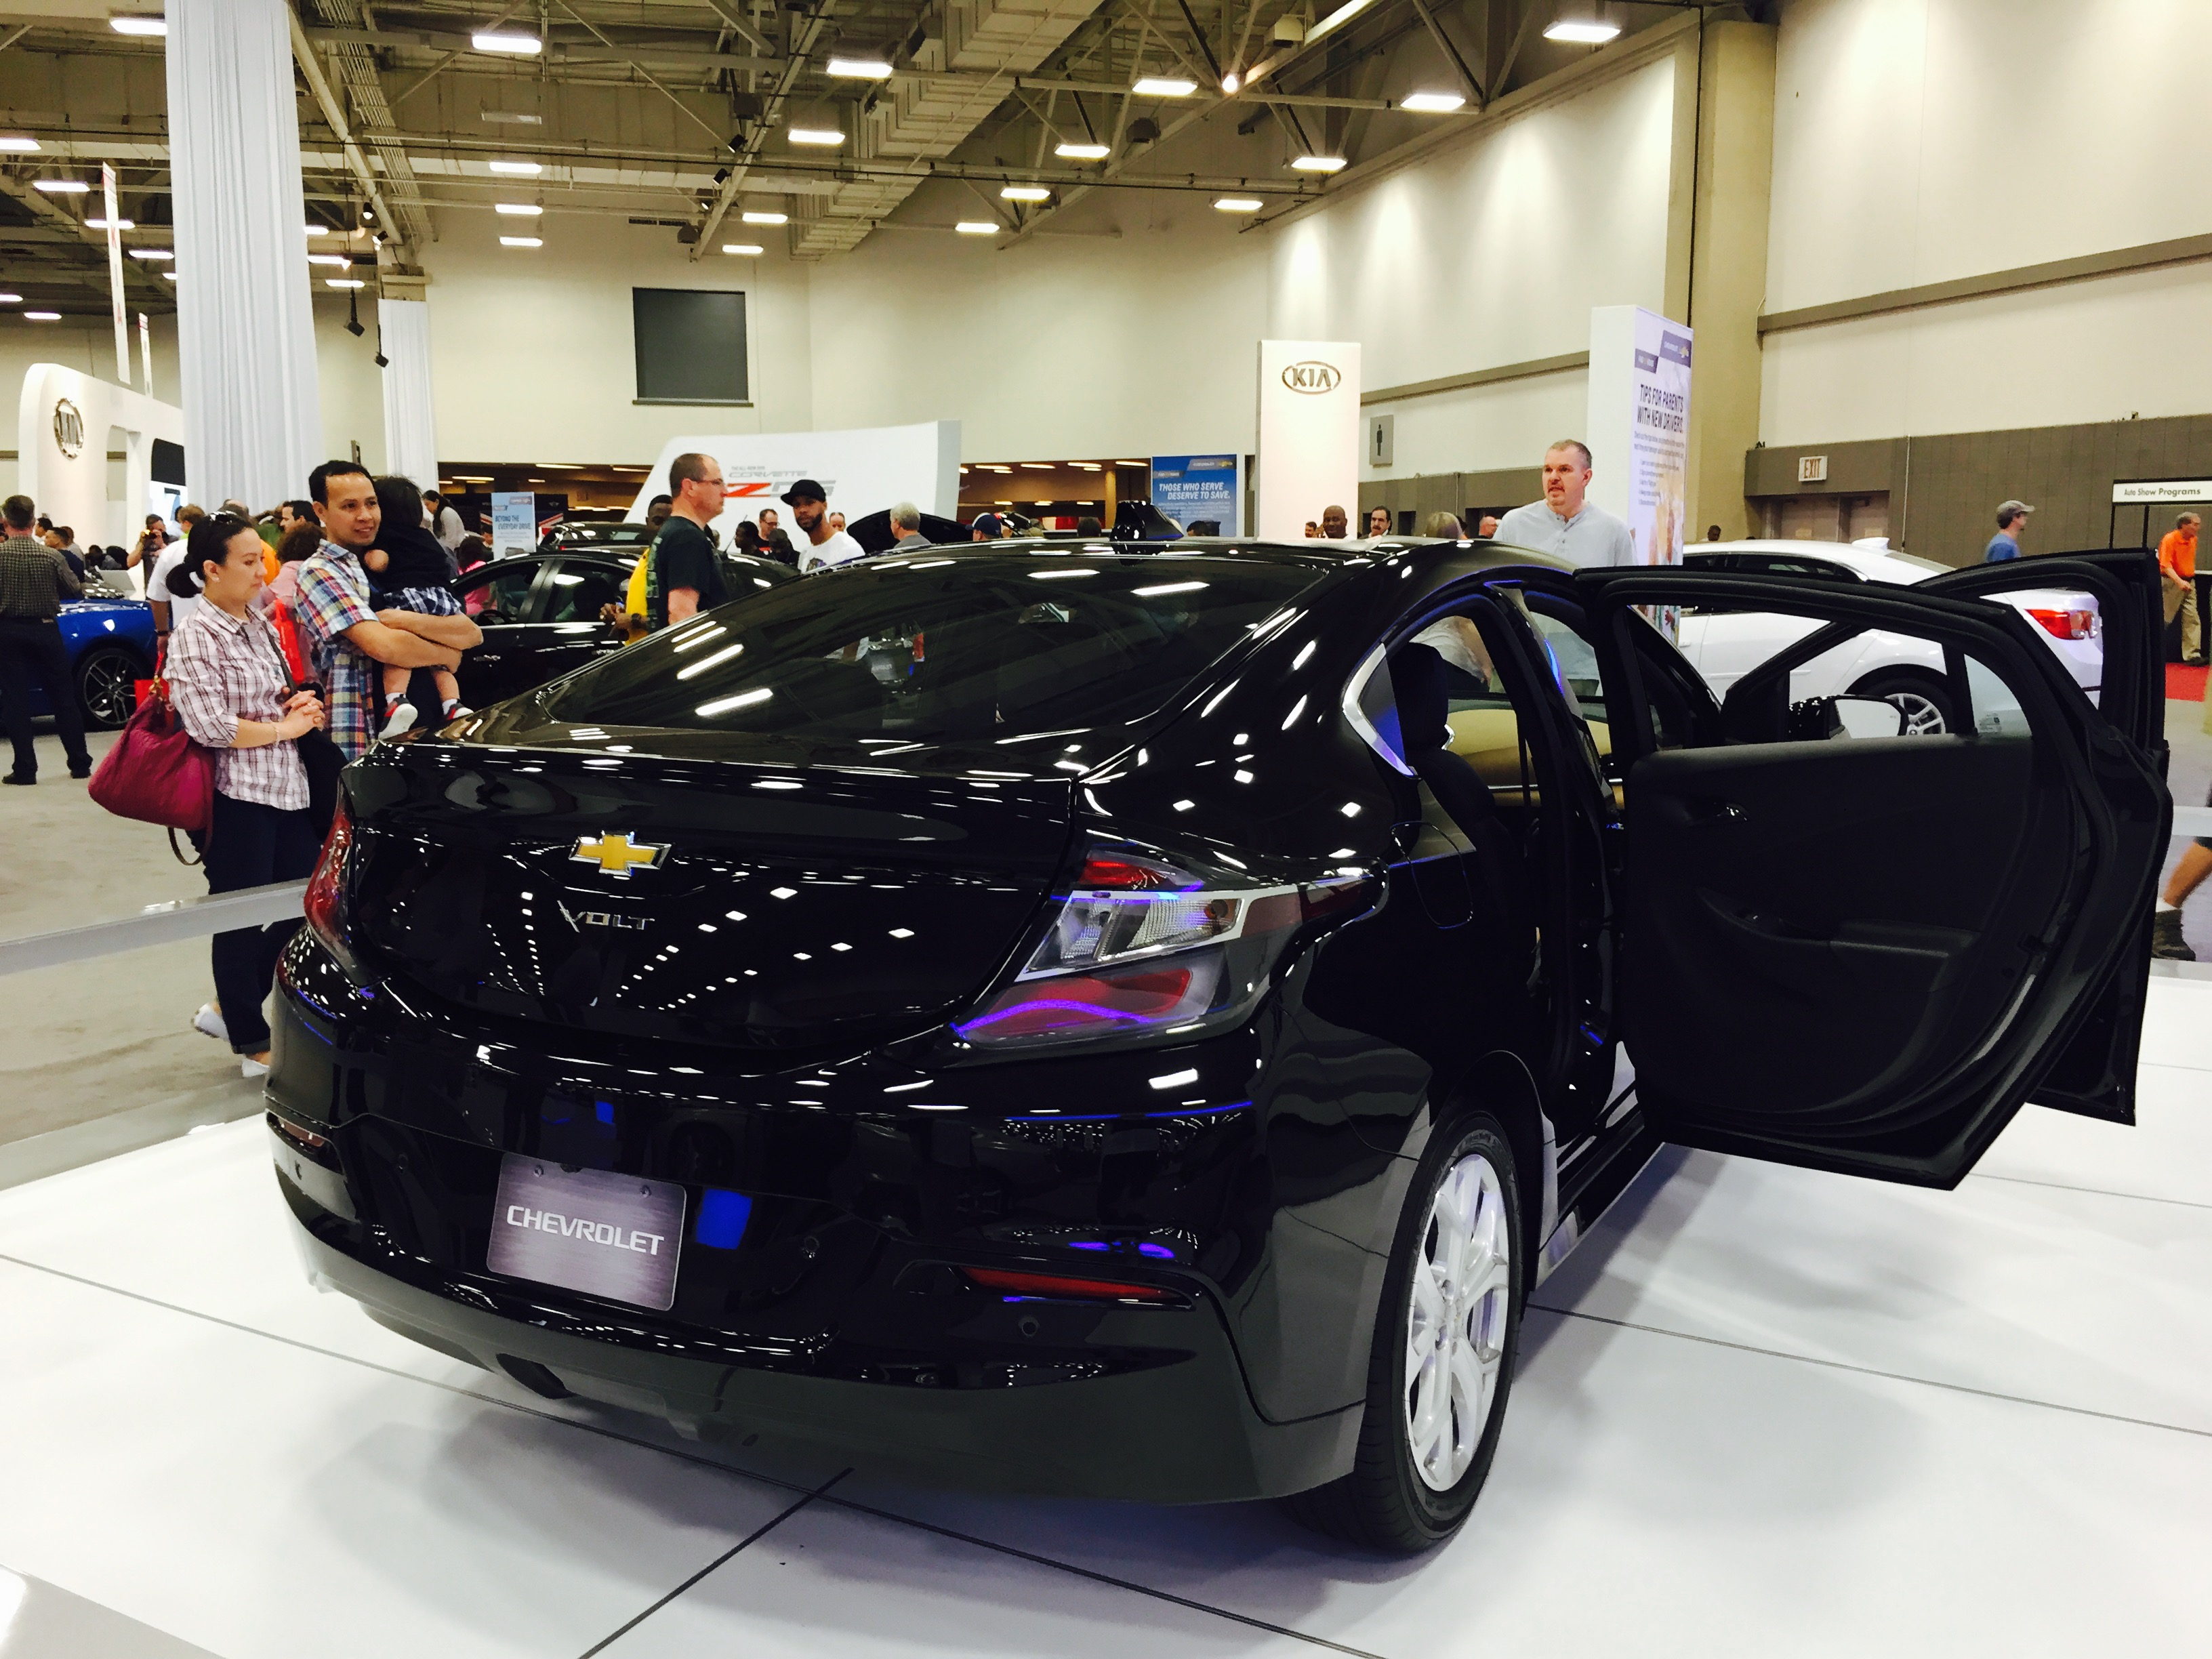 Visitors check out a Chevrolet Volt at last year's auto show.